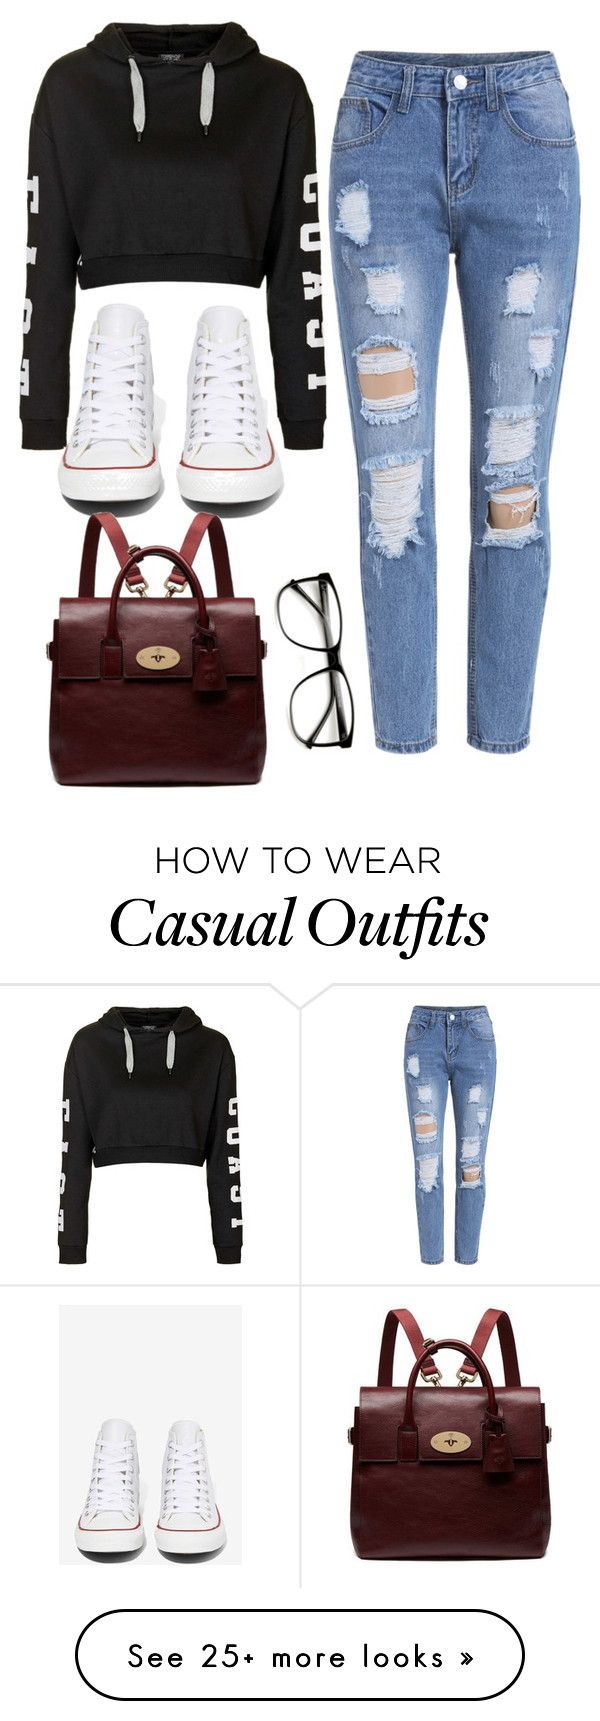 cool and casual by ruthjauregui on Polyvore featuring Topshop, Converse, Mulberry, womens clothing, women, female, woman, misses and juniors Women's Shoes - http://amzn.to/2gvL0Lo